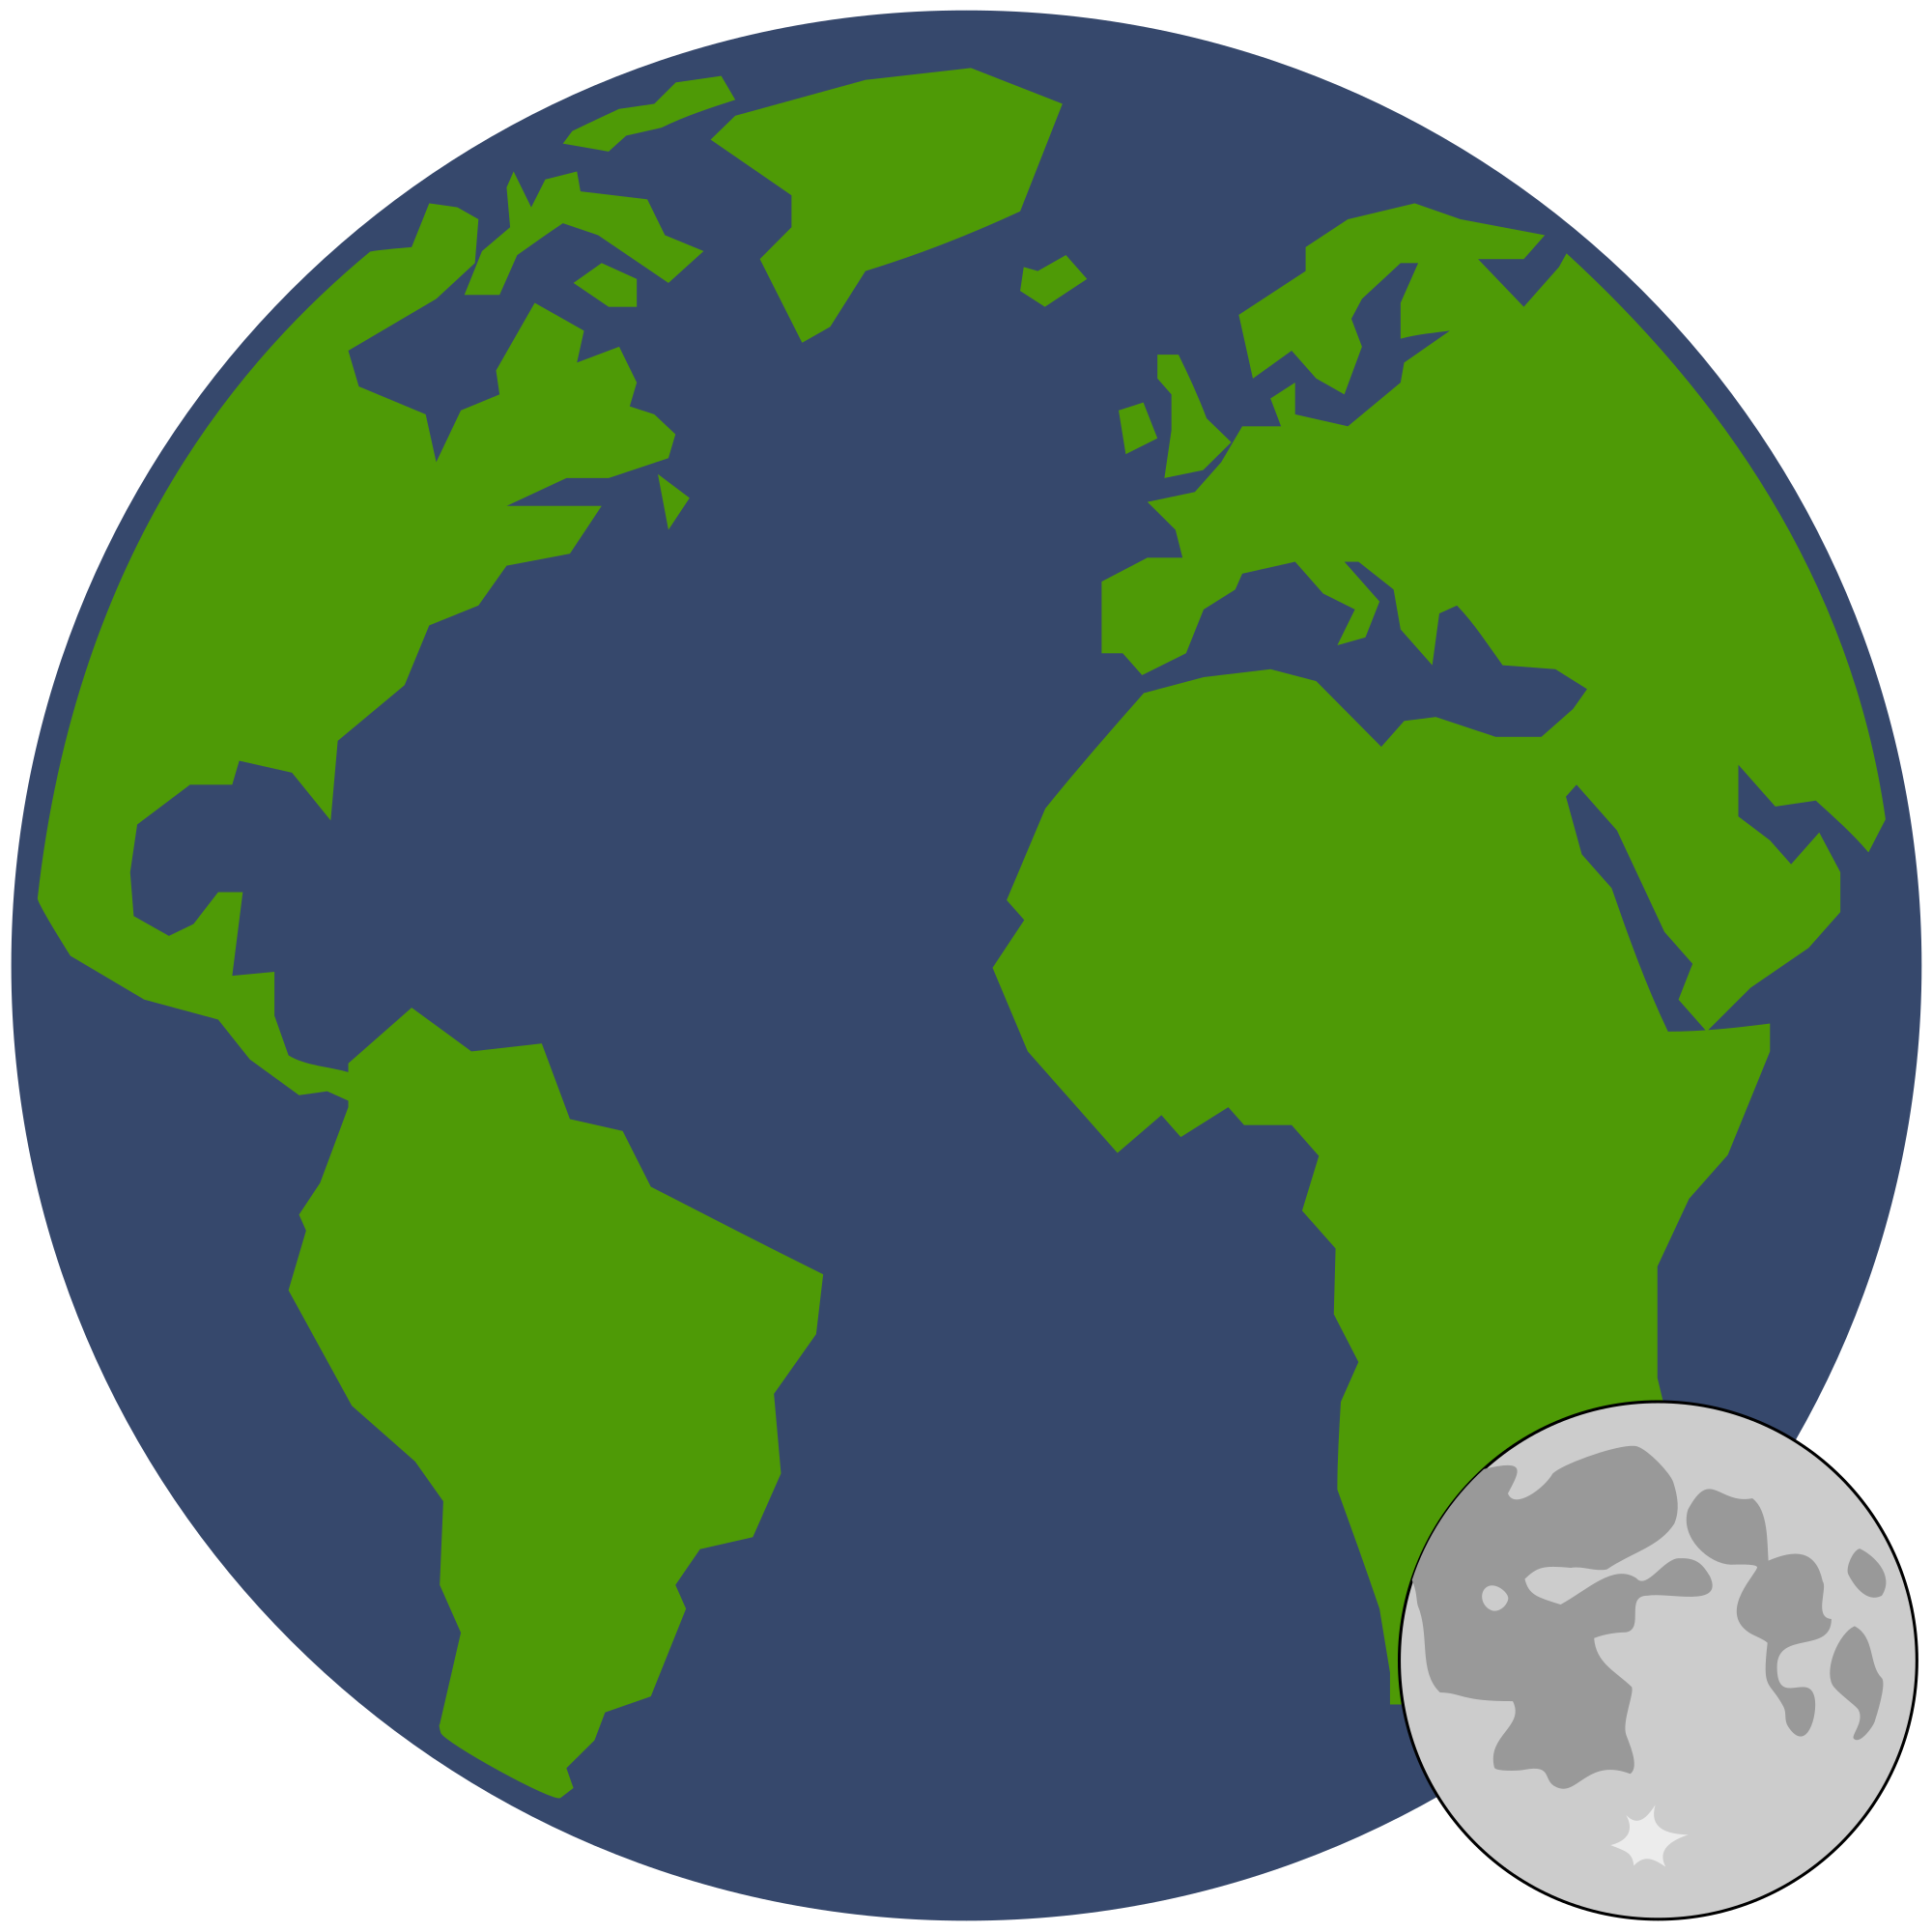 Erde clipart clip library File:Earth Moon comparision sketch.svg - Wikimedia Commons clip library